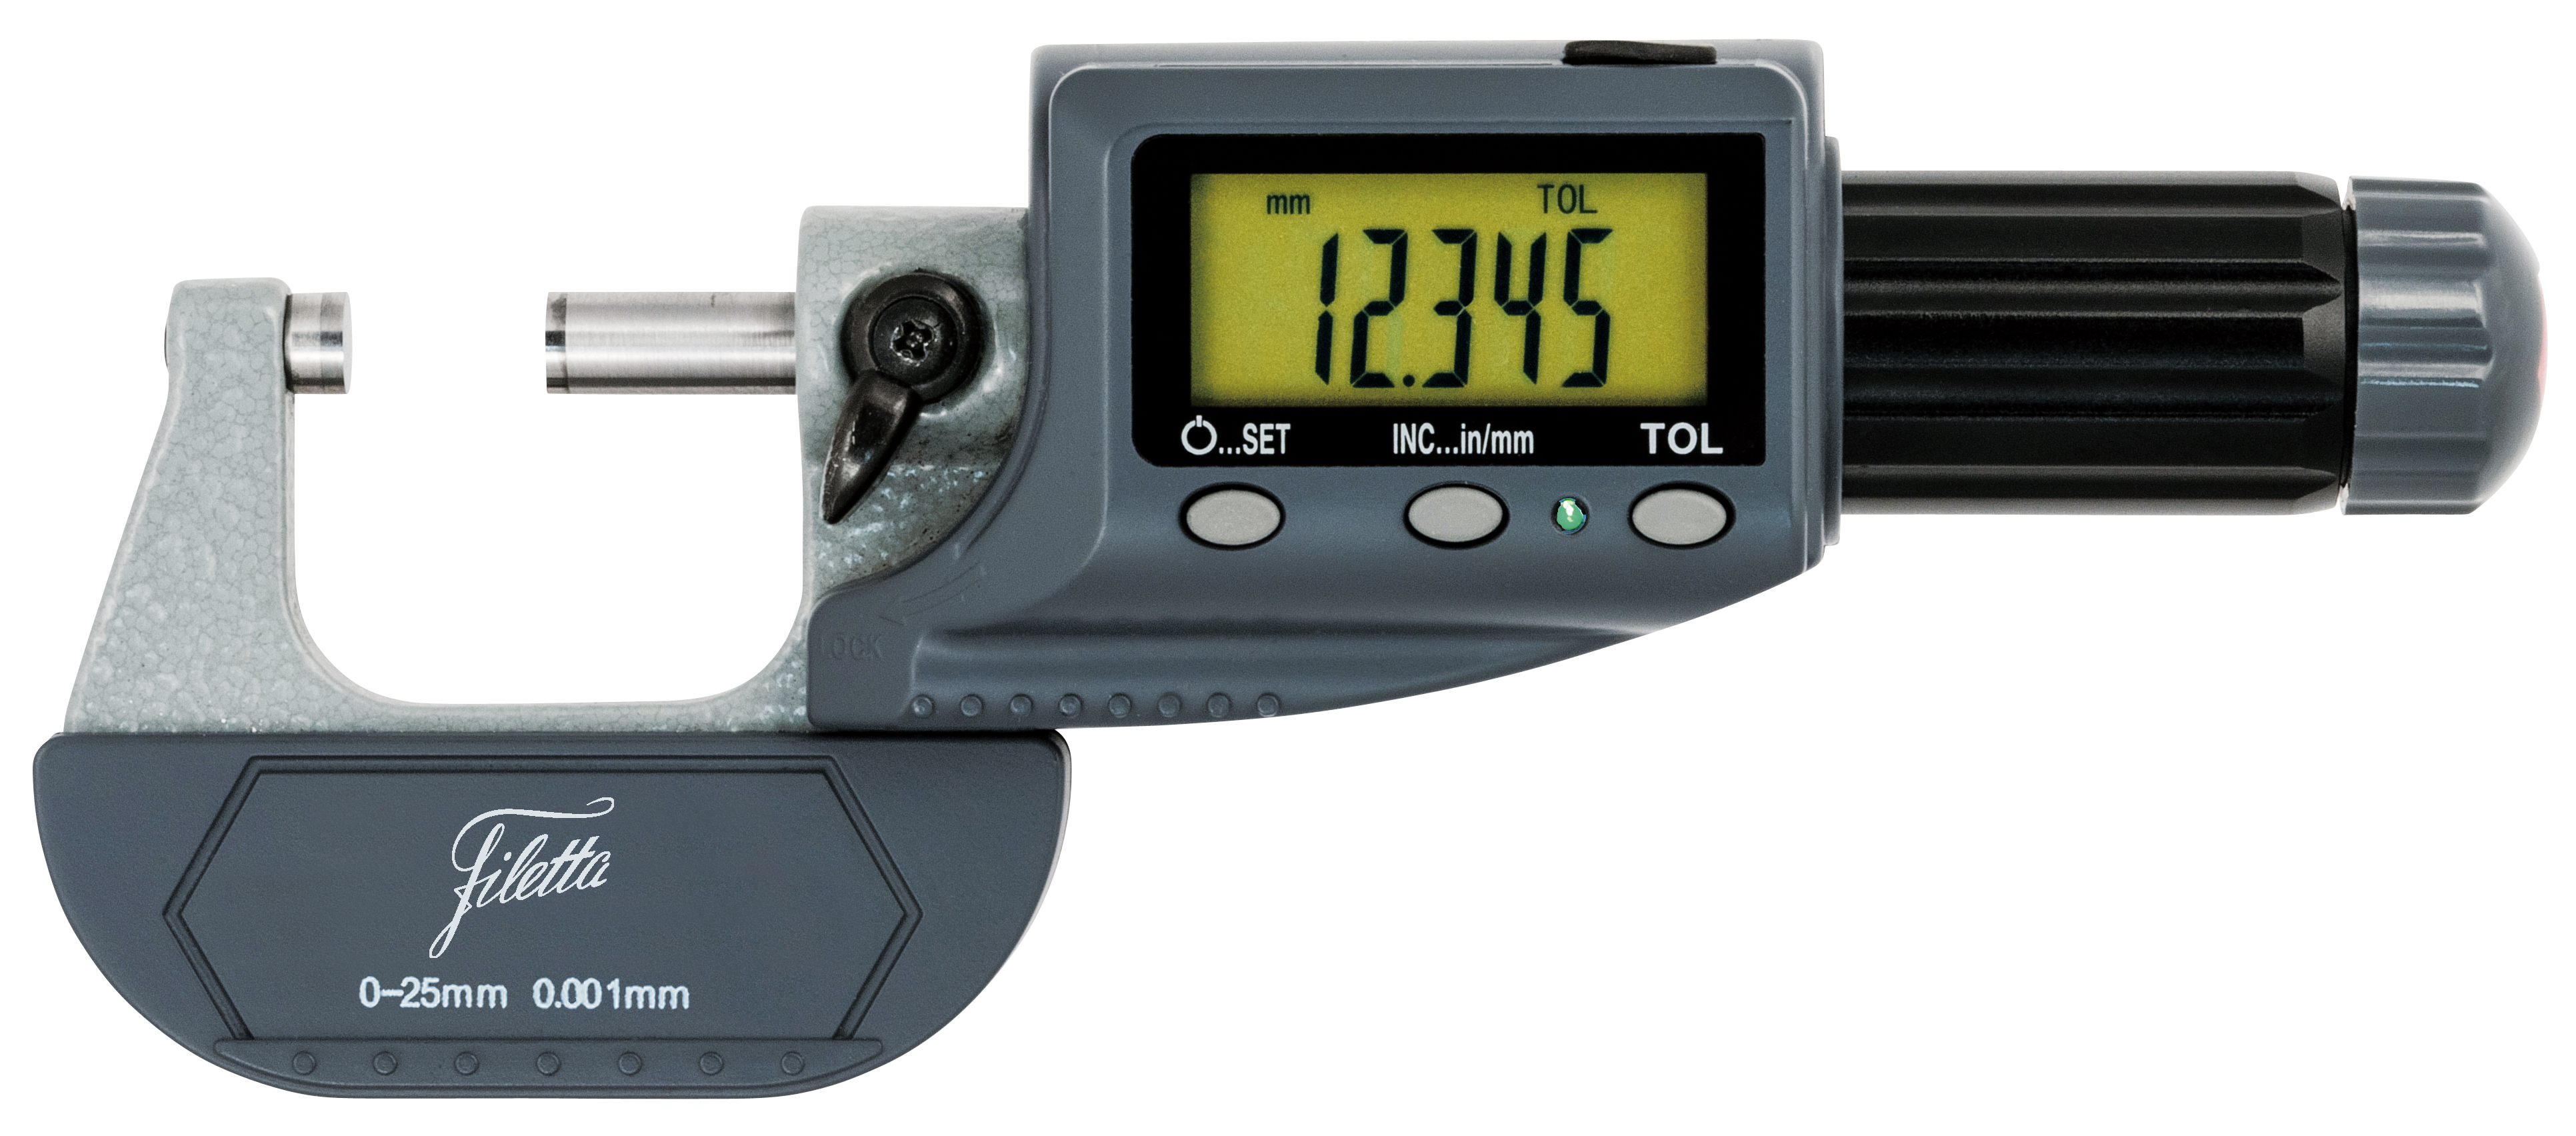 Digital outside micrometer with function to set tolerance limits, 0-25mm, IP 54